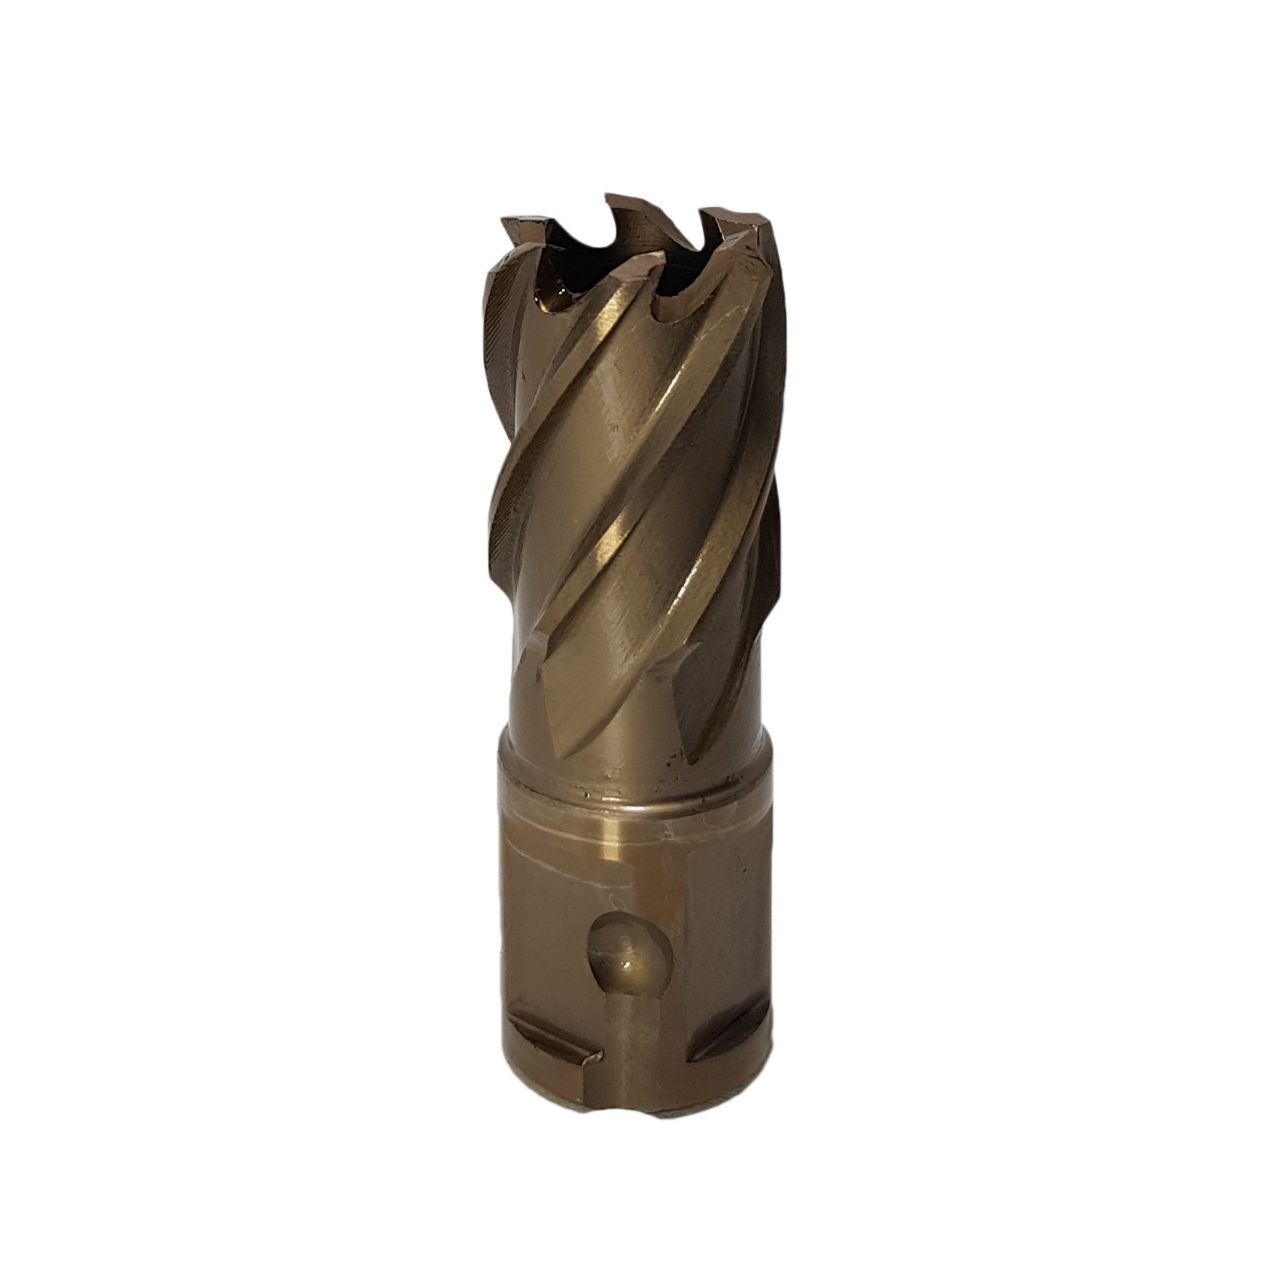 24 X 30 HSS-Co Excision Core Drill